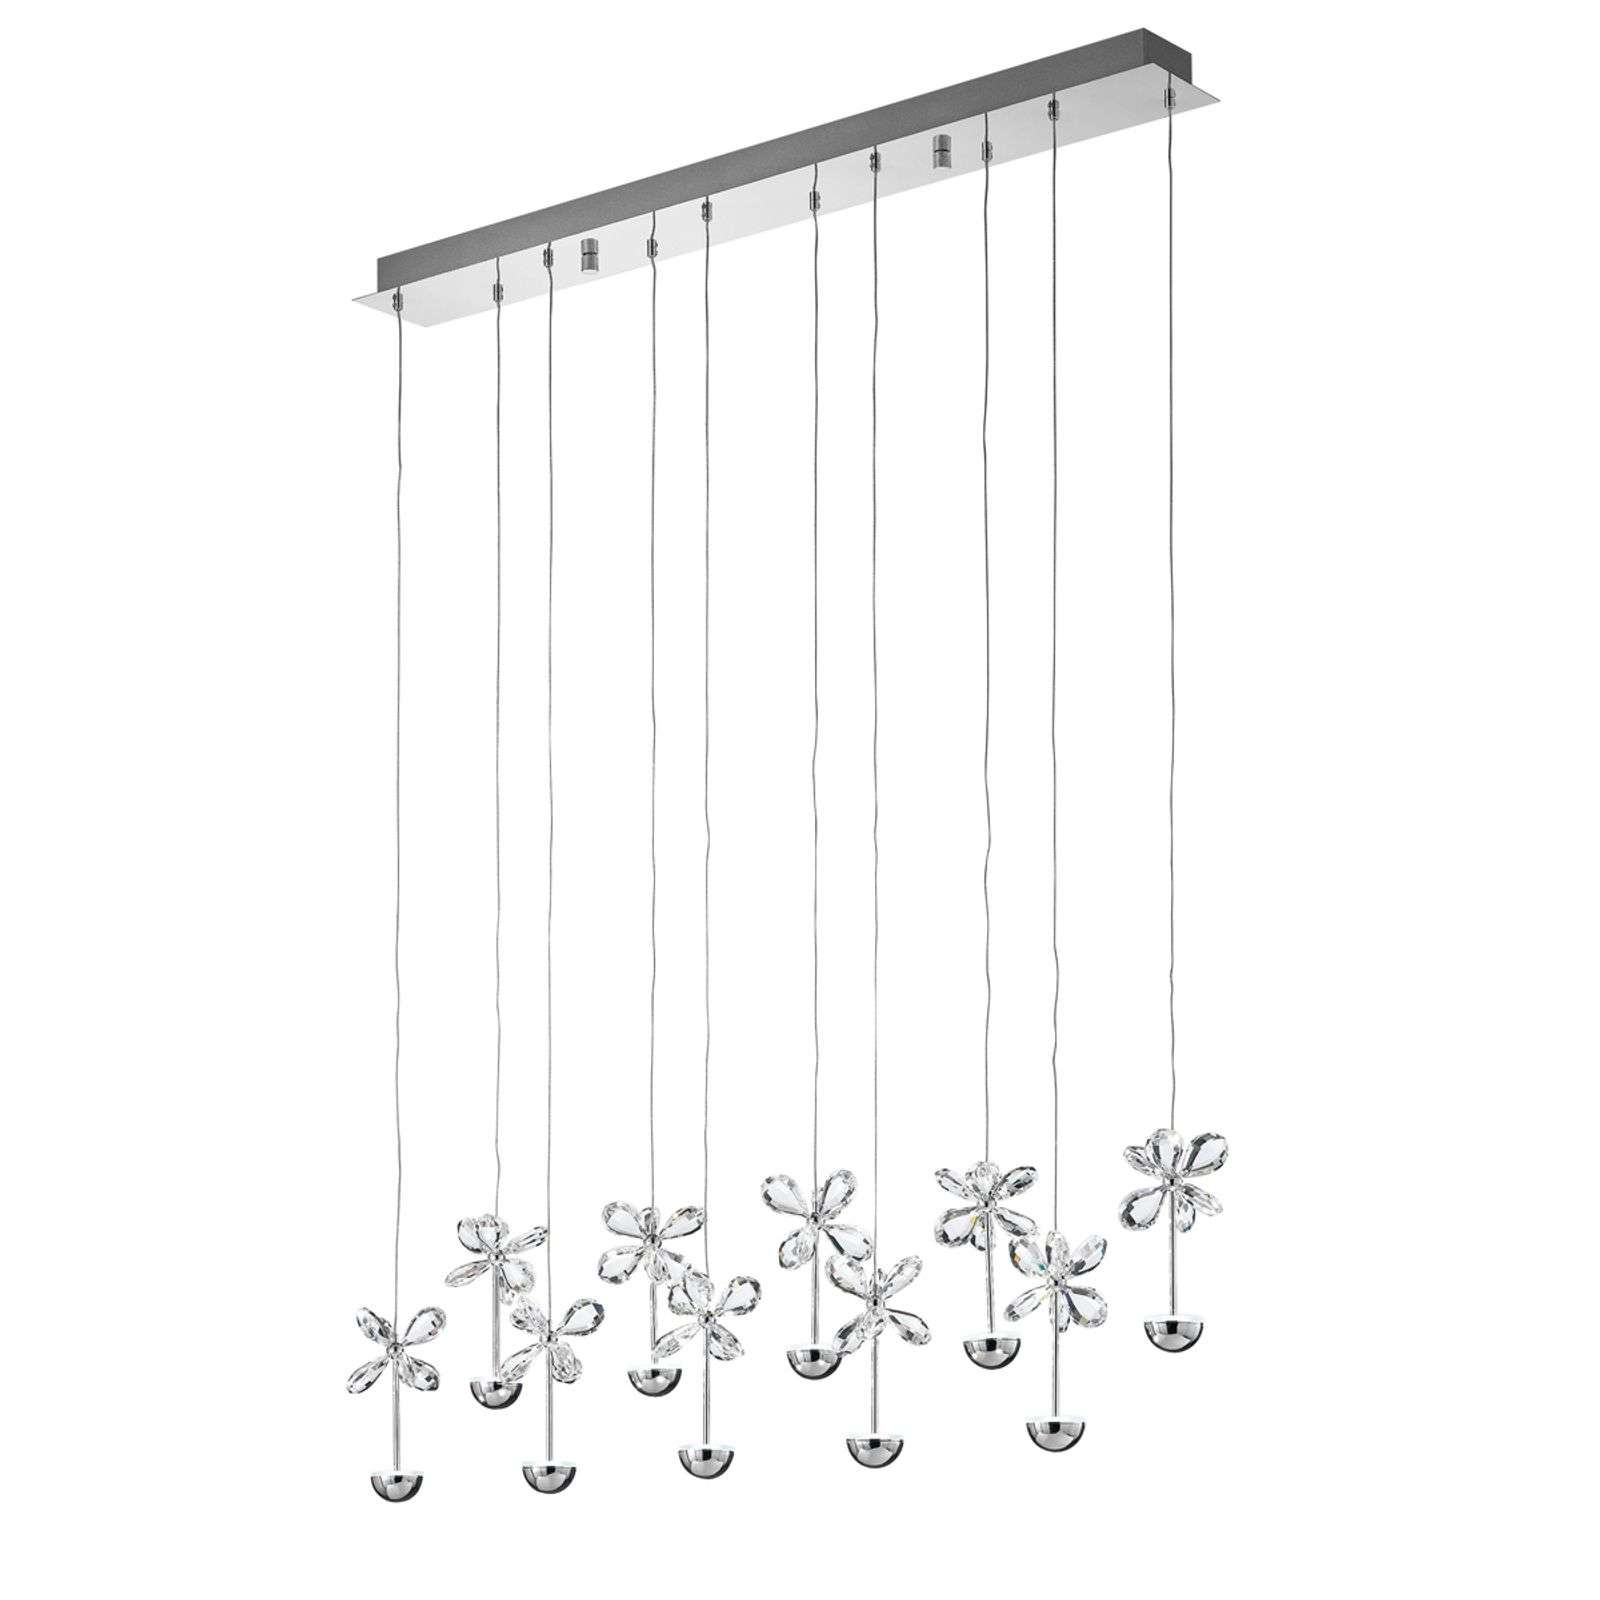 Suspension LED extravagante Pianopoli